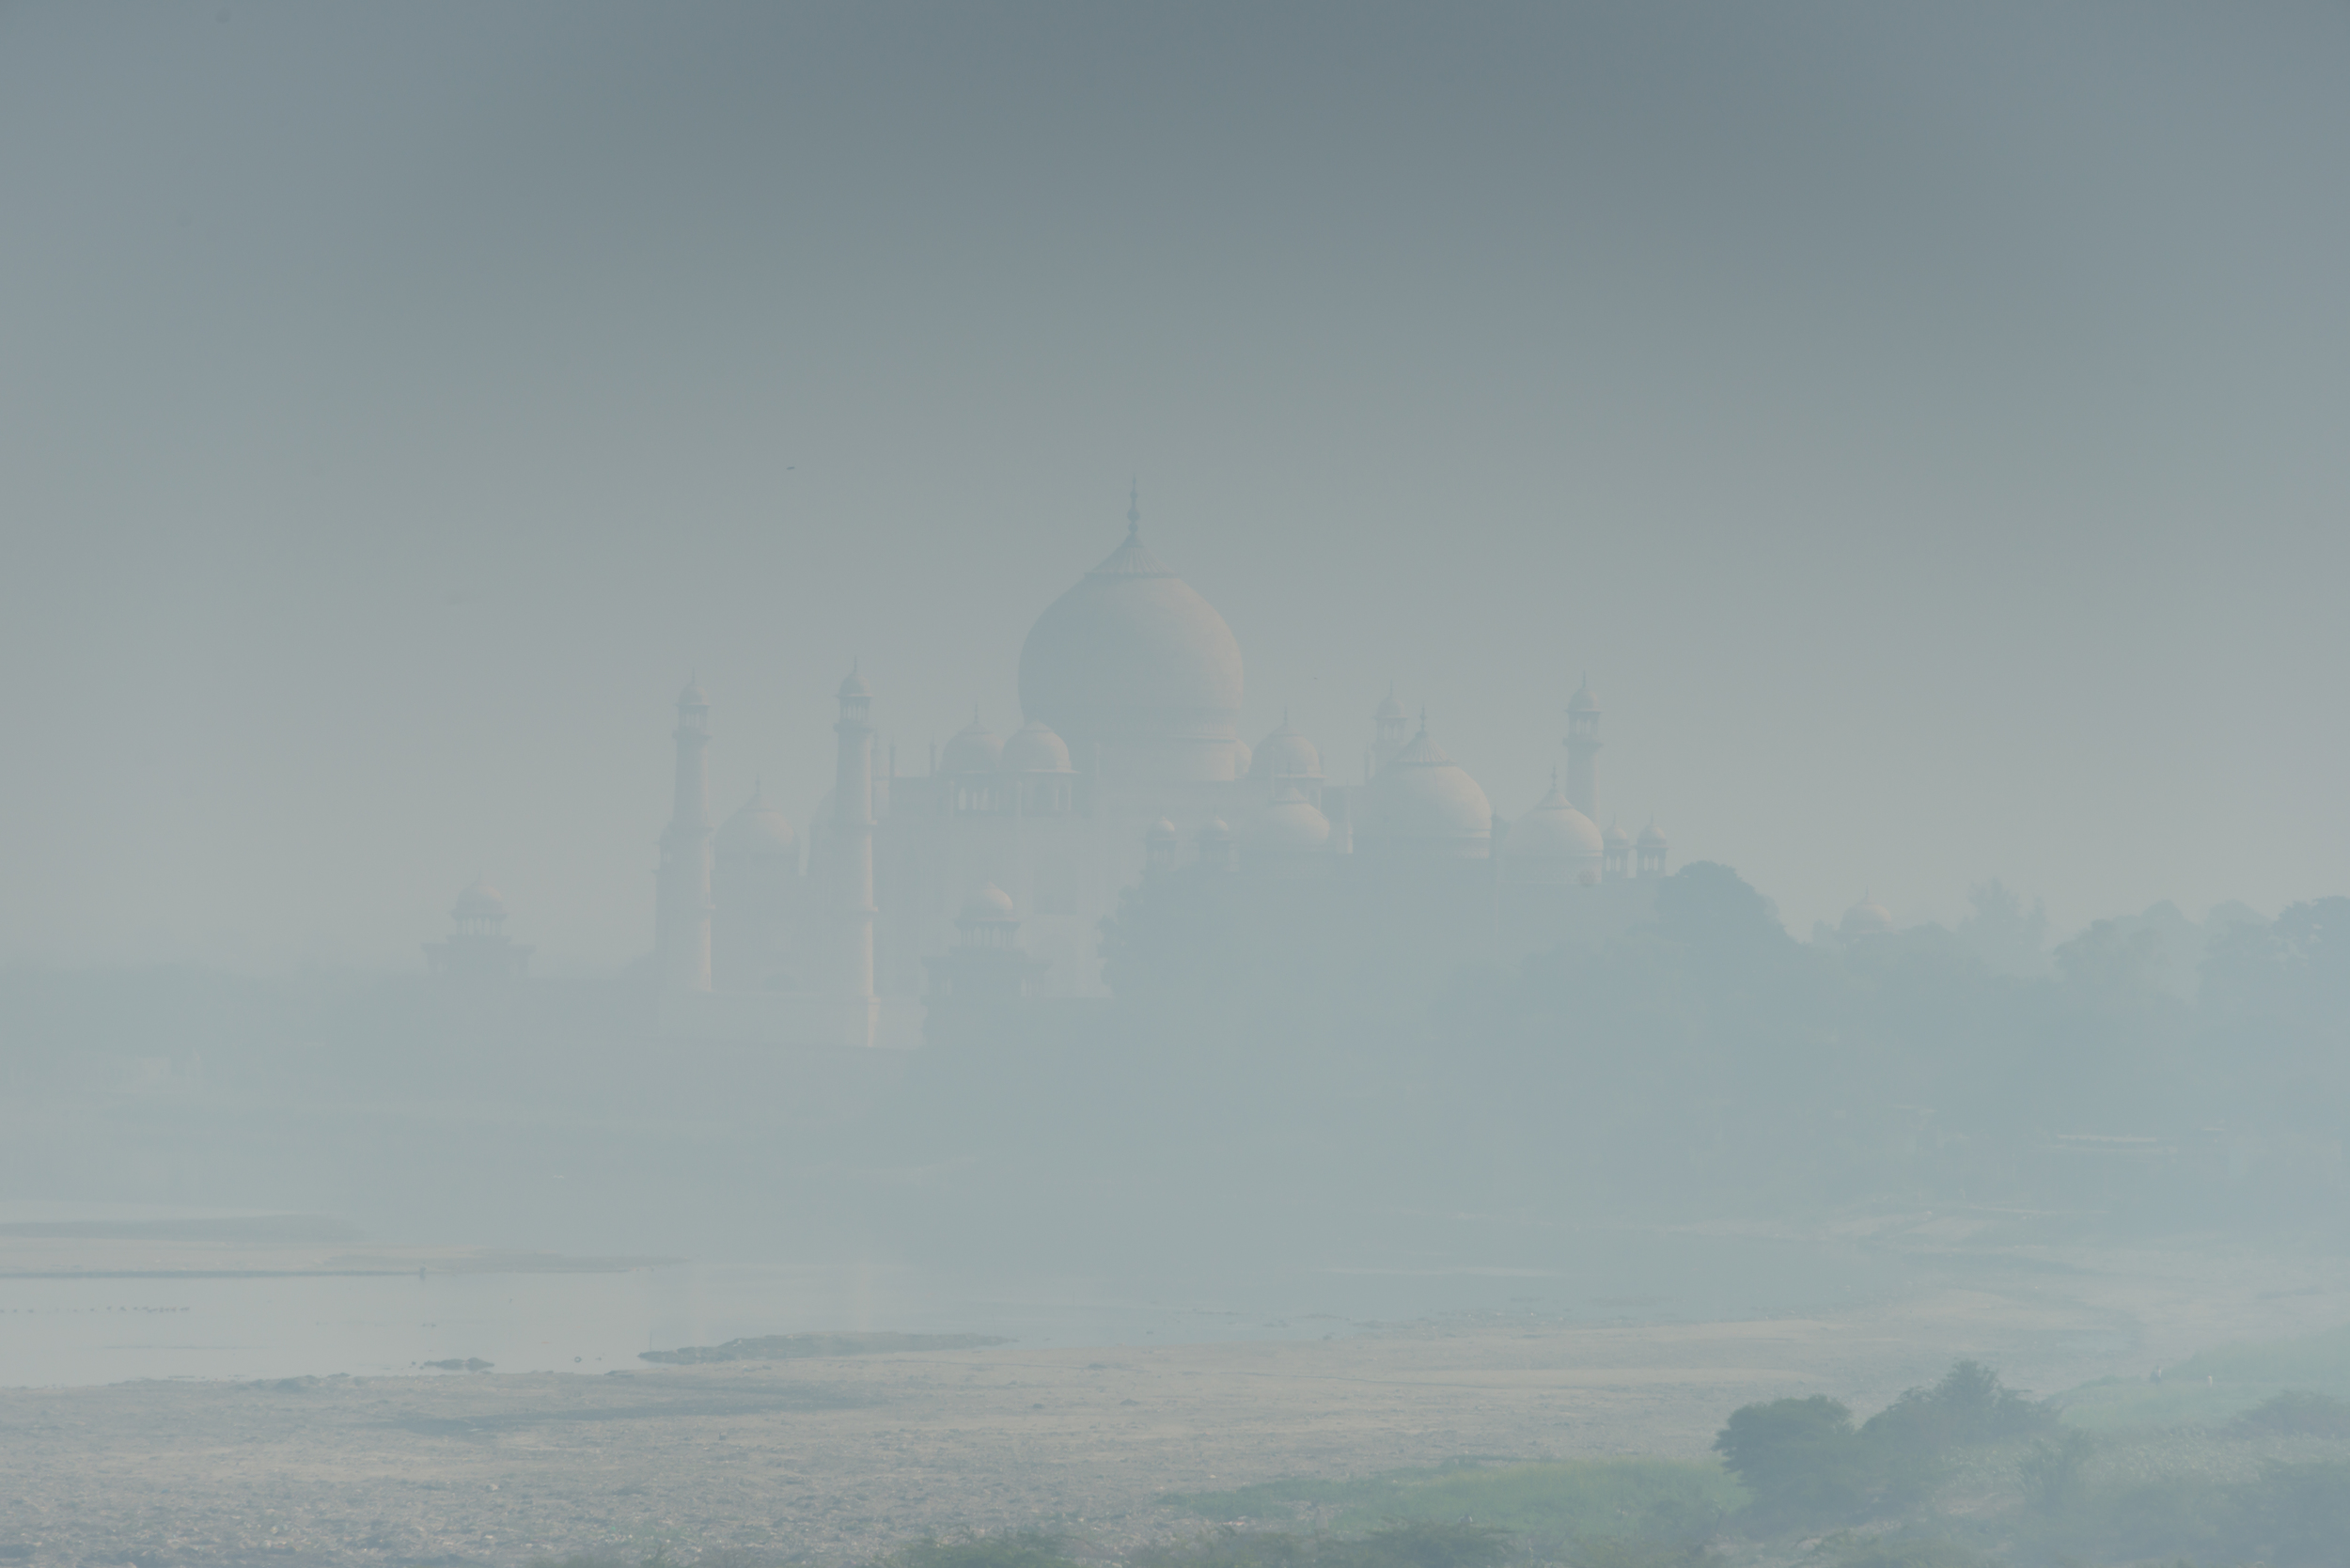 Taj Mahal from Agra Fort in blue haze (x2)